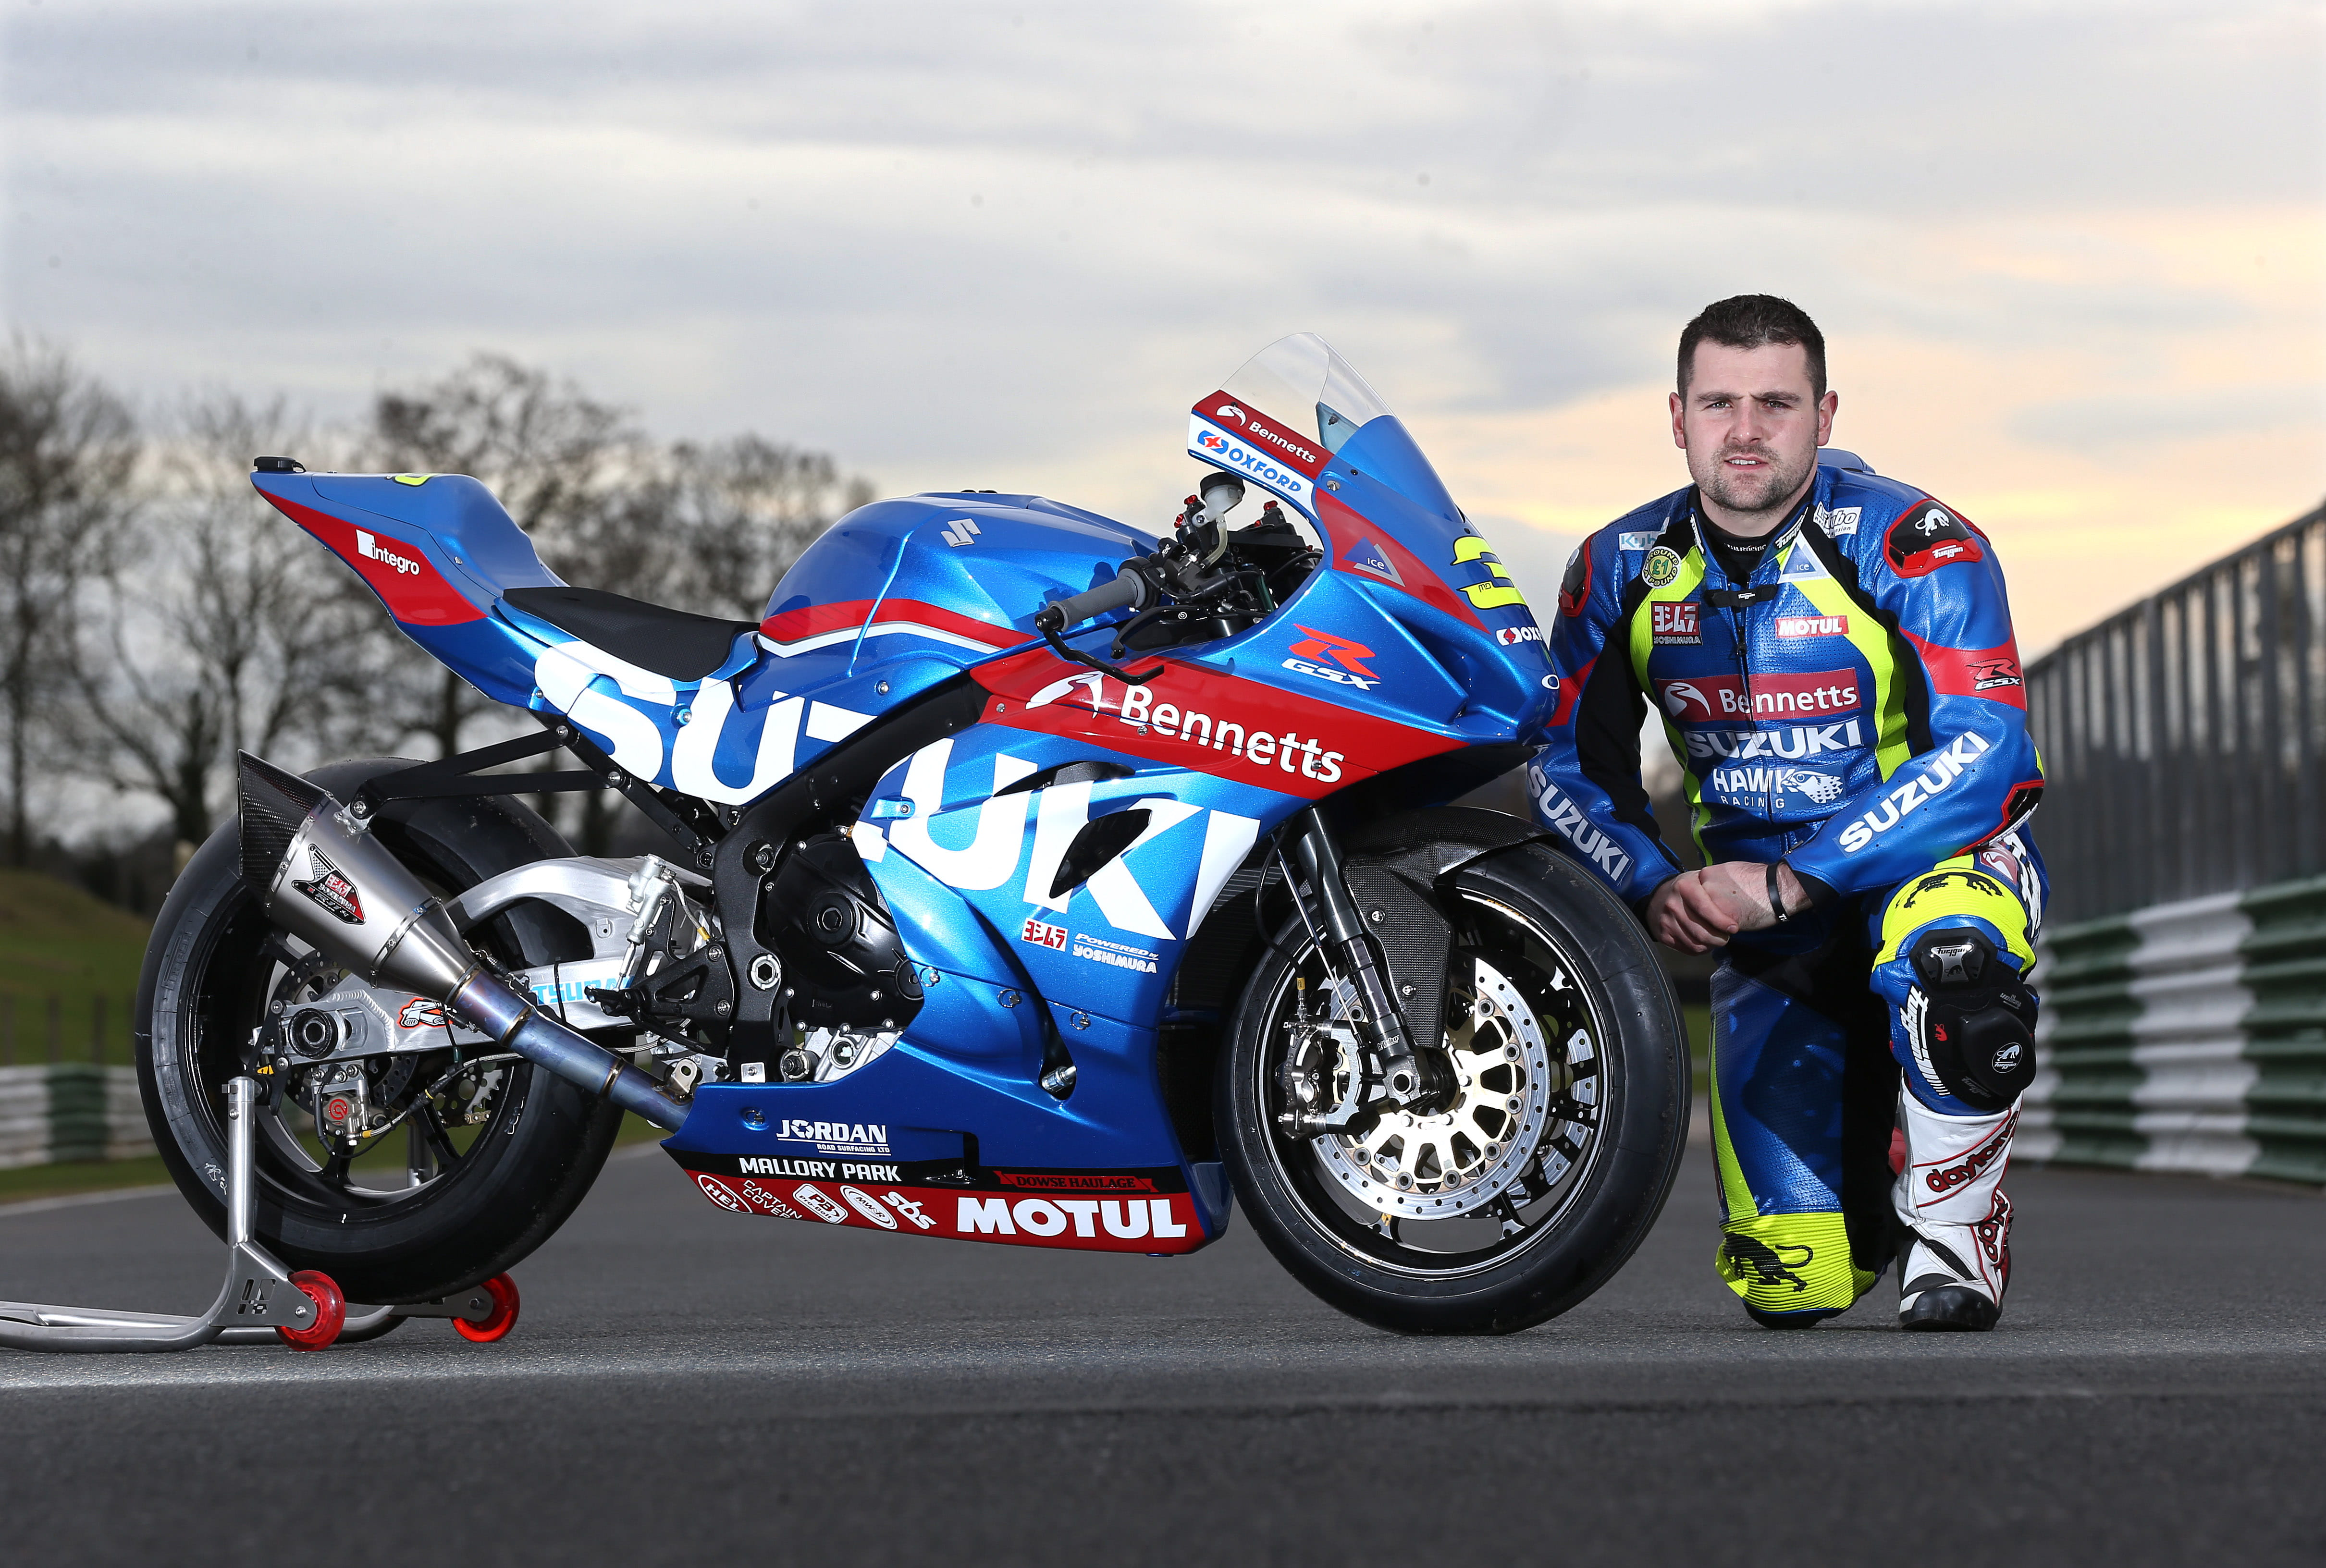 Michael Dunlop races for the Bennetts Suzuki by Hawk Racing Team in 2017 at the Isle of Man TT